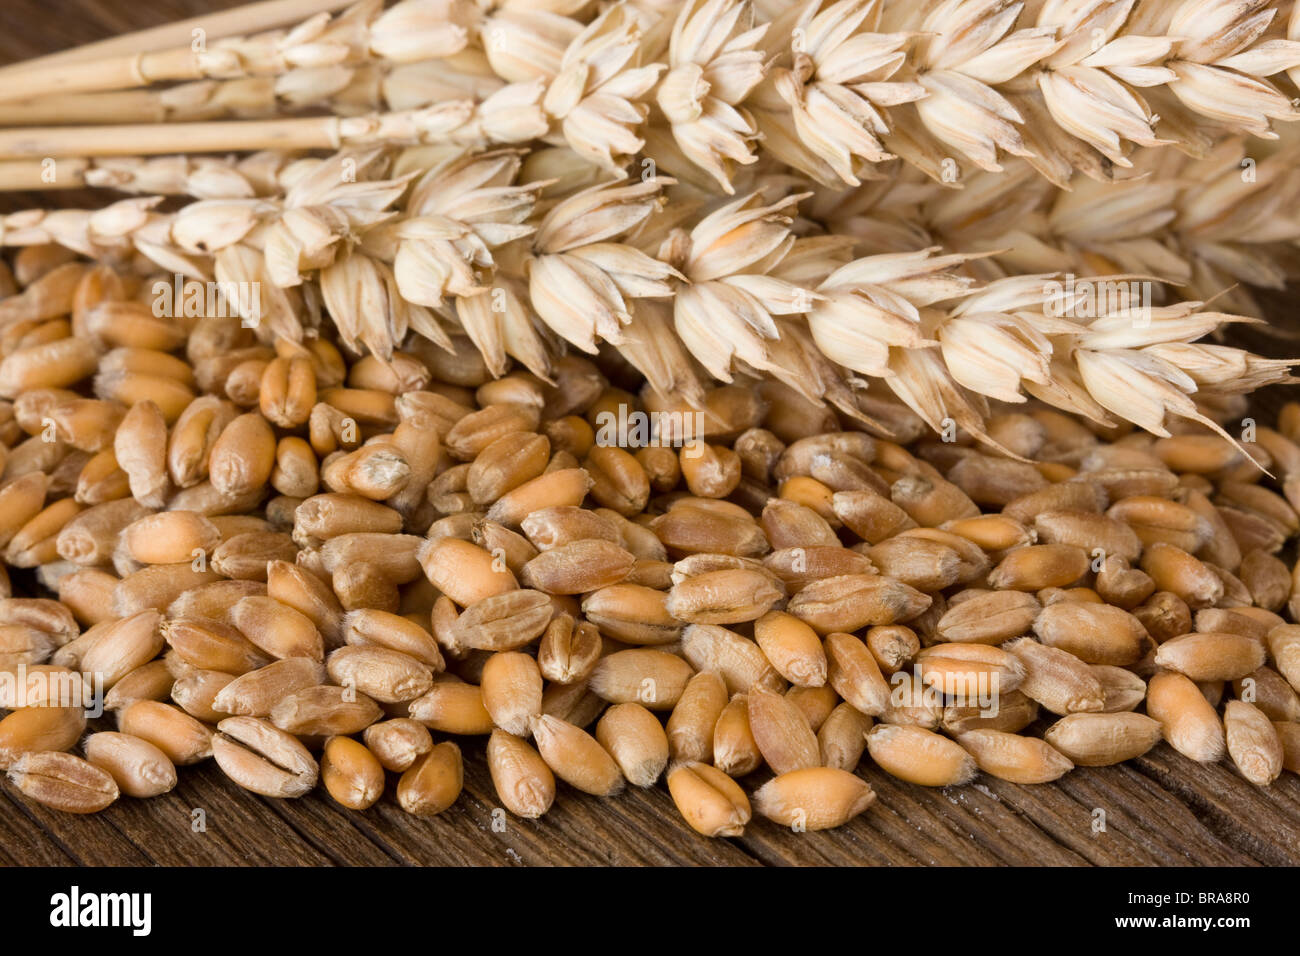 Wheat on wooden desk - Stock Image